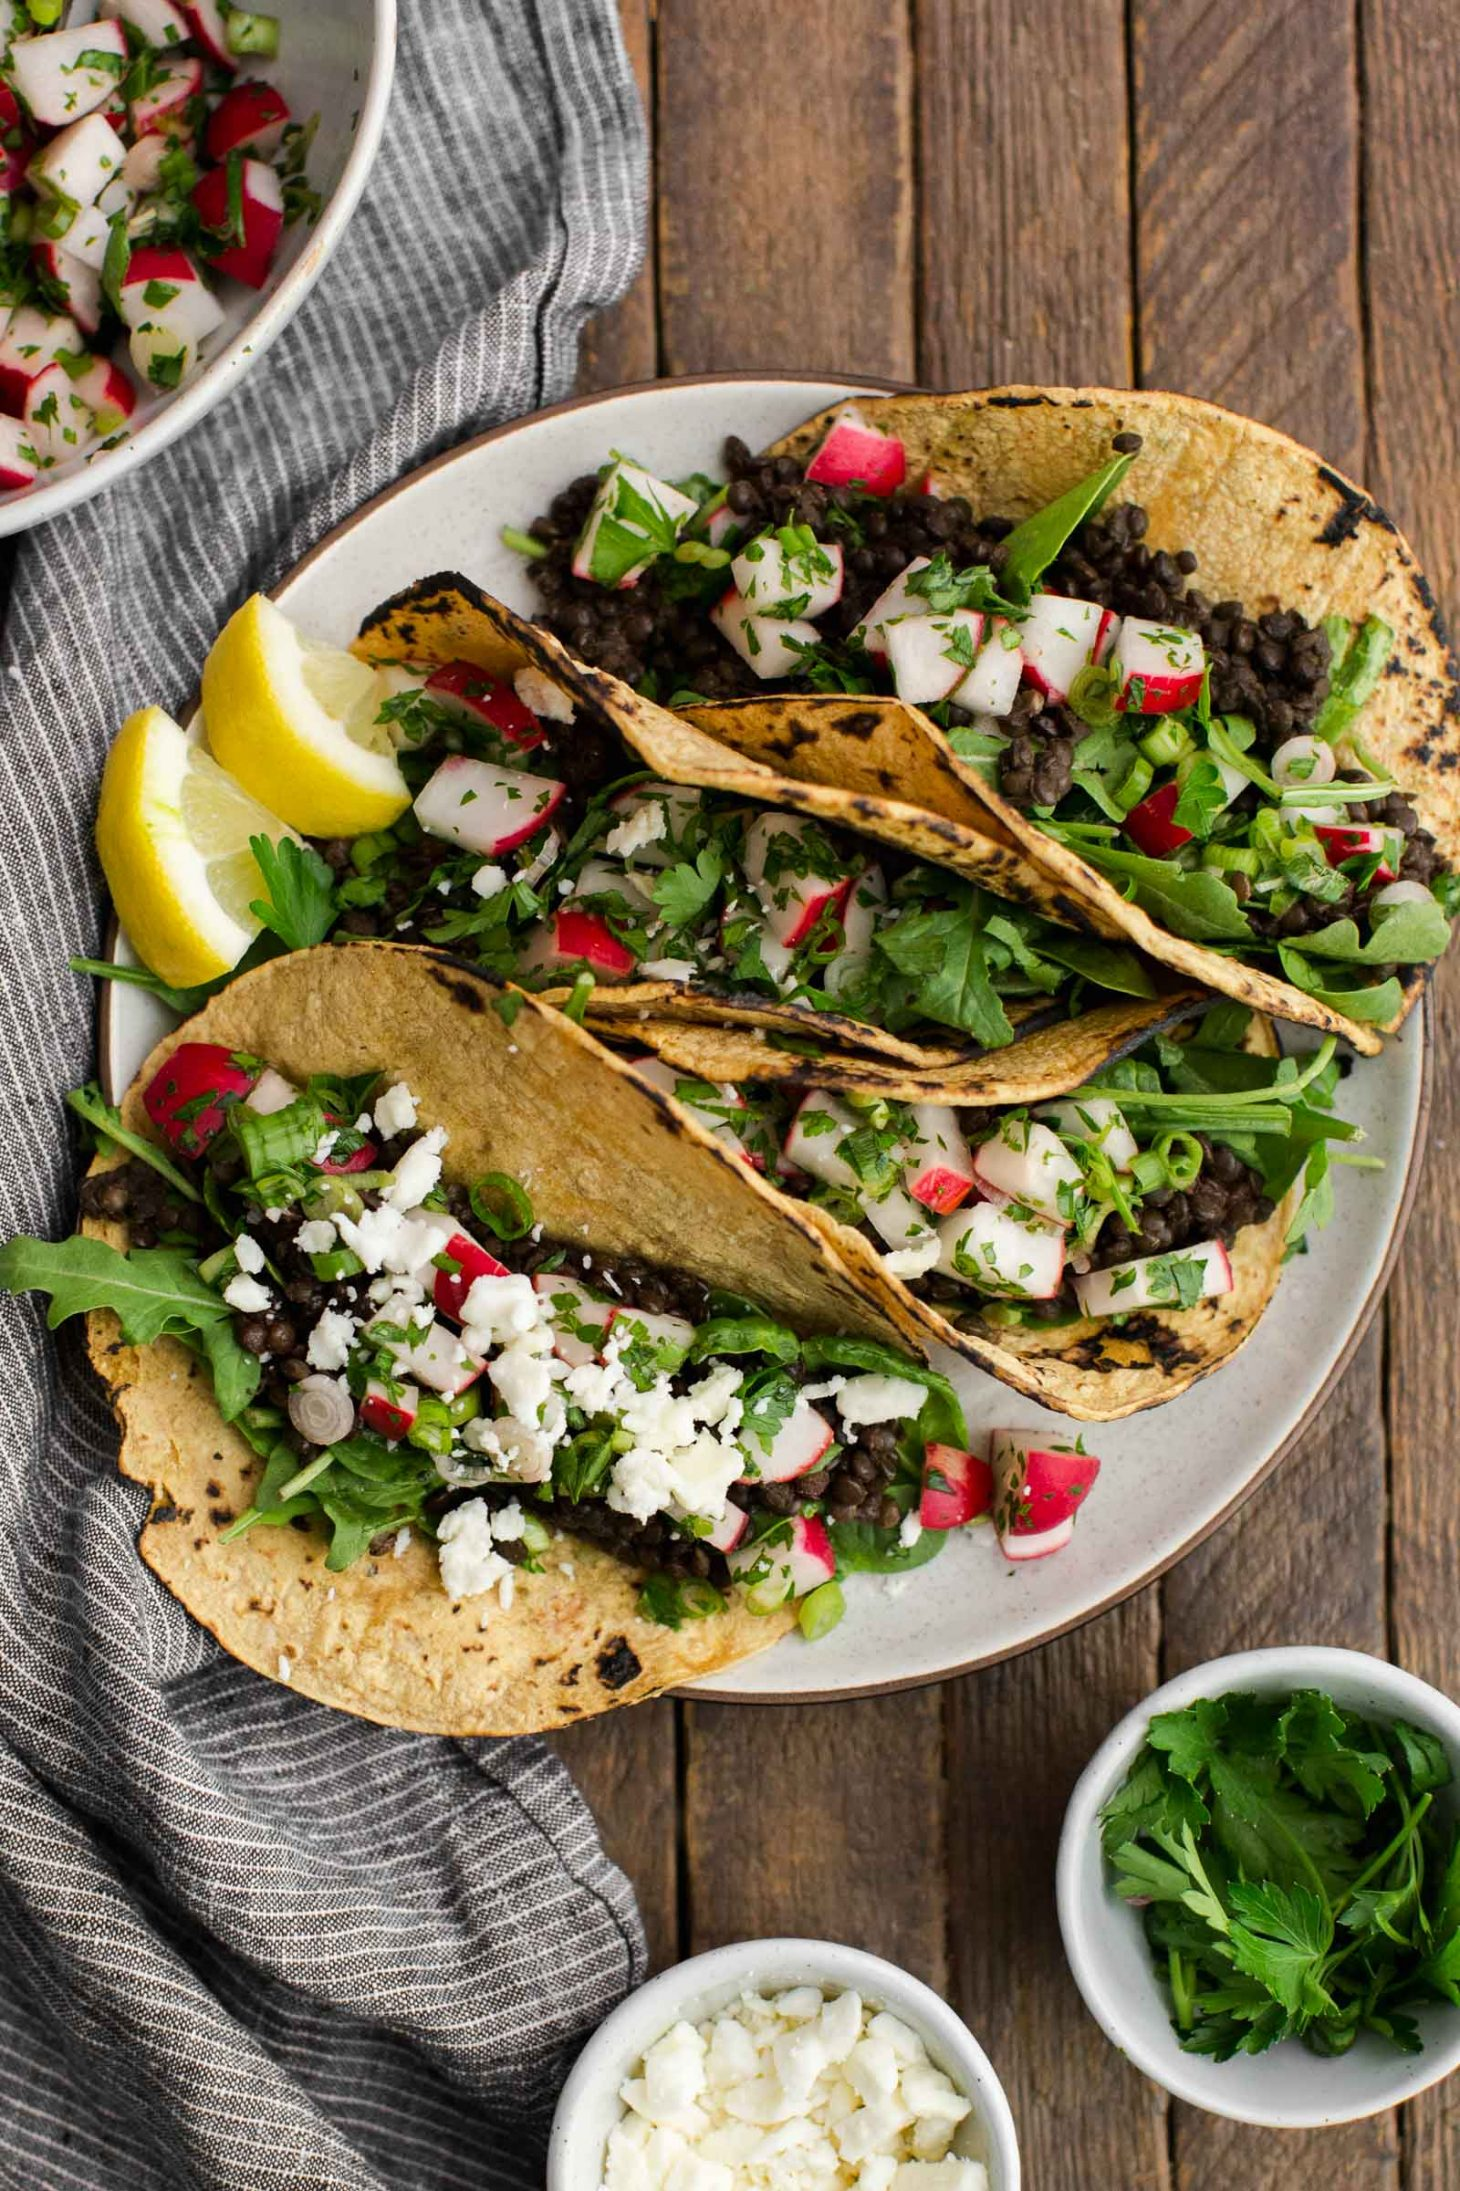 Spicy Lentil Tacos with Radish Salsa and Feta